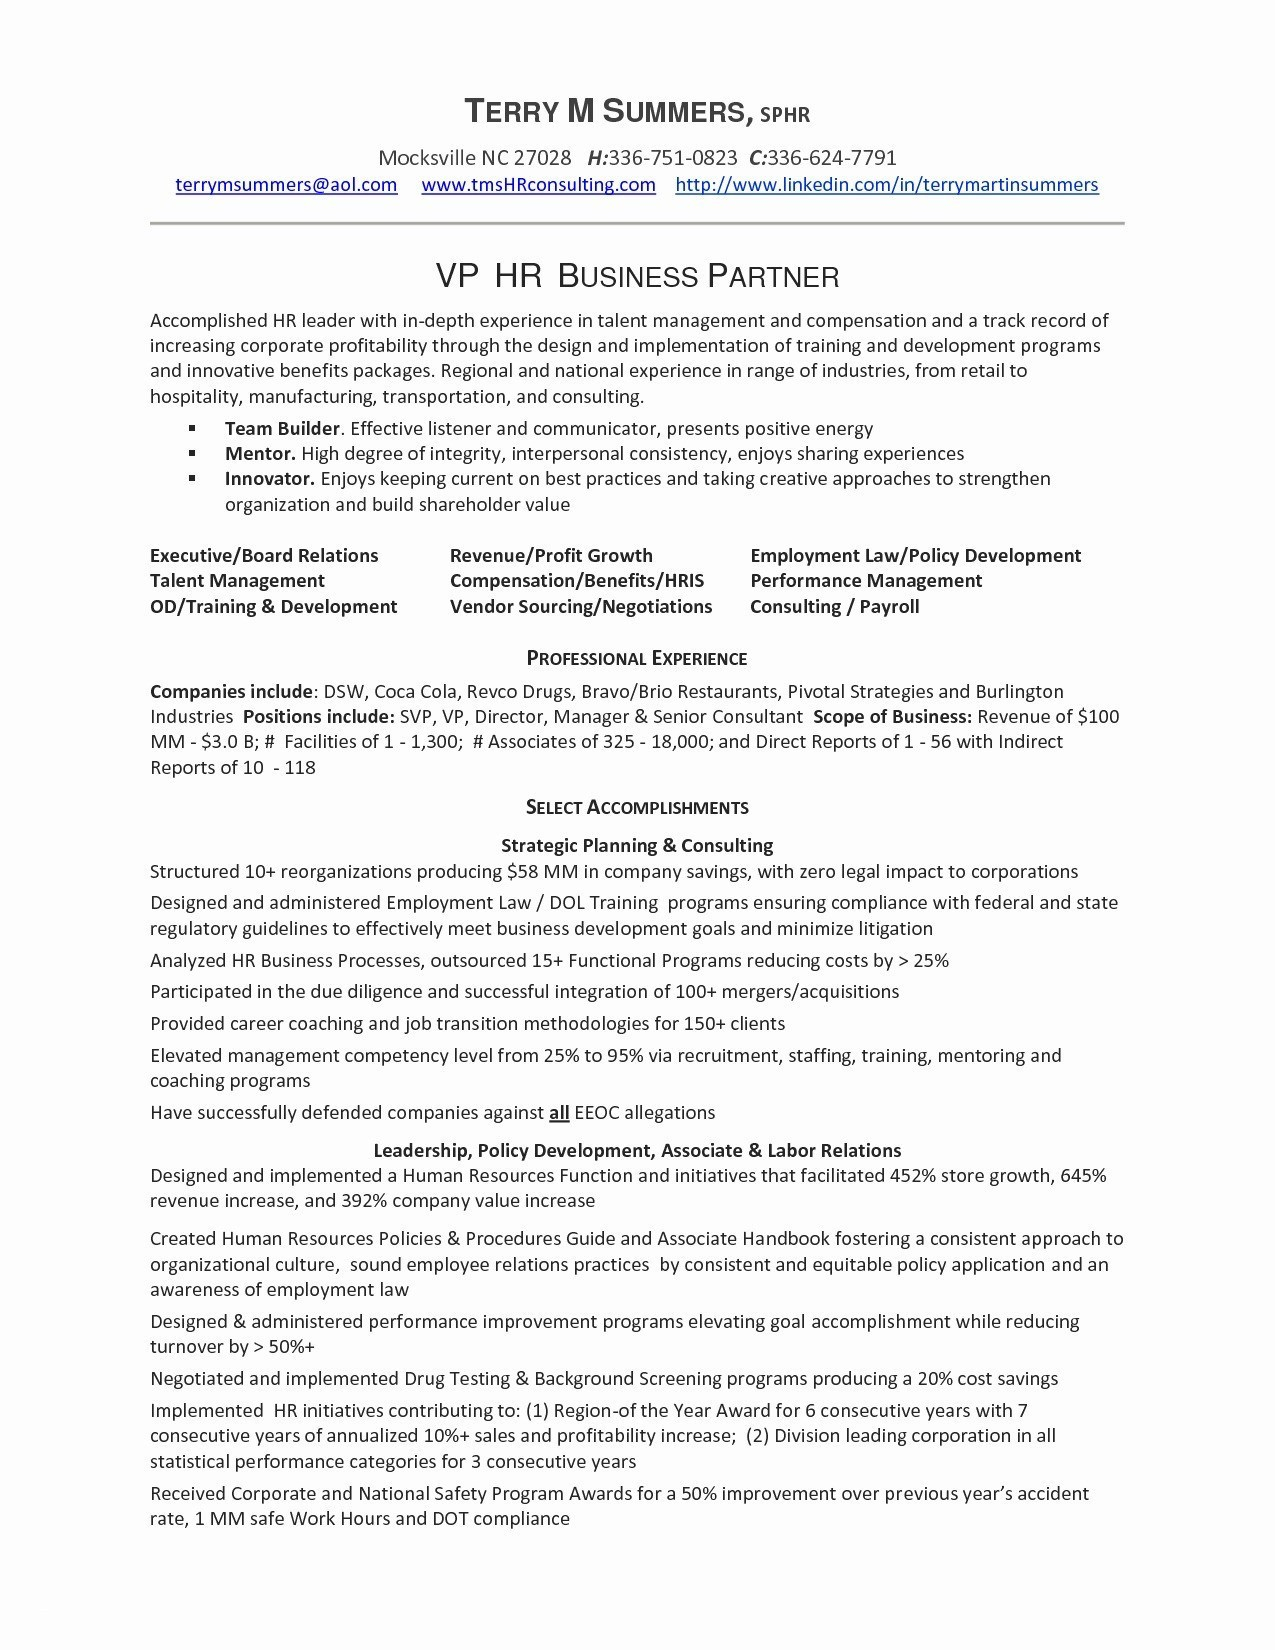 Is My Perfect Resume Safe - My Perfect Resume Customer Service Number Save My Perfect Resume